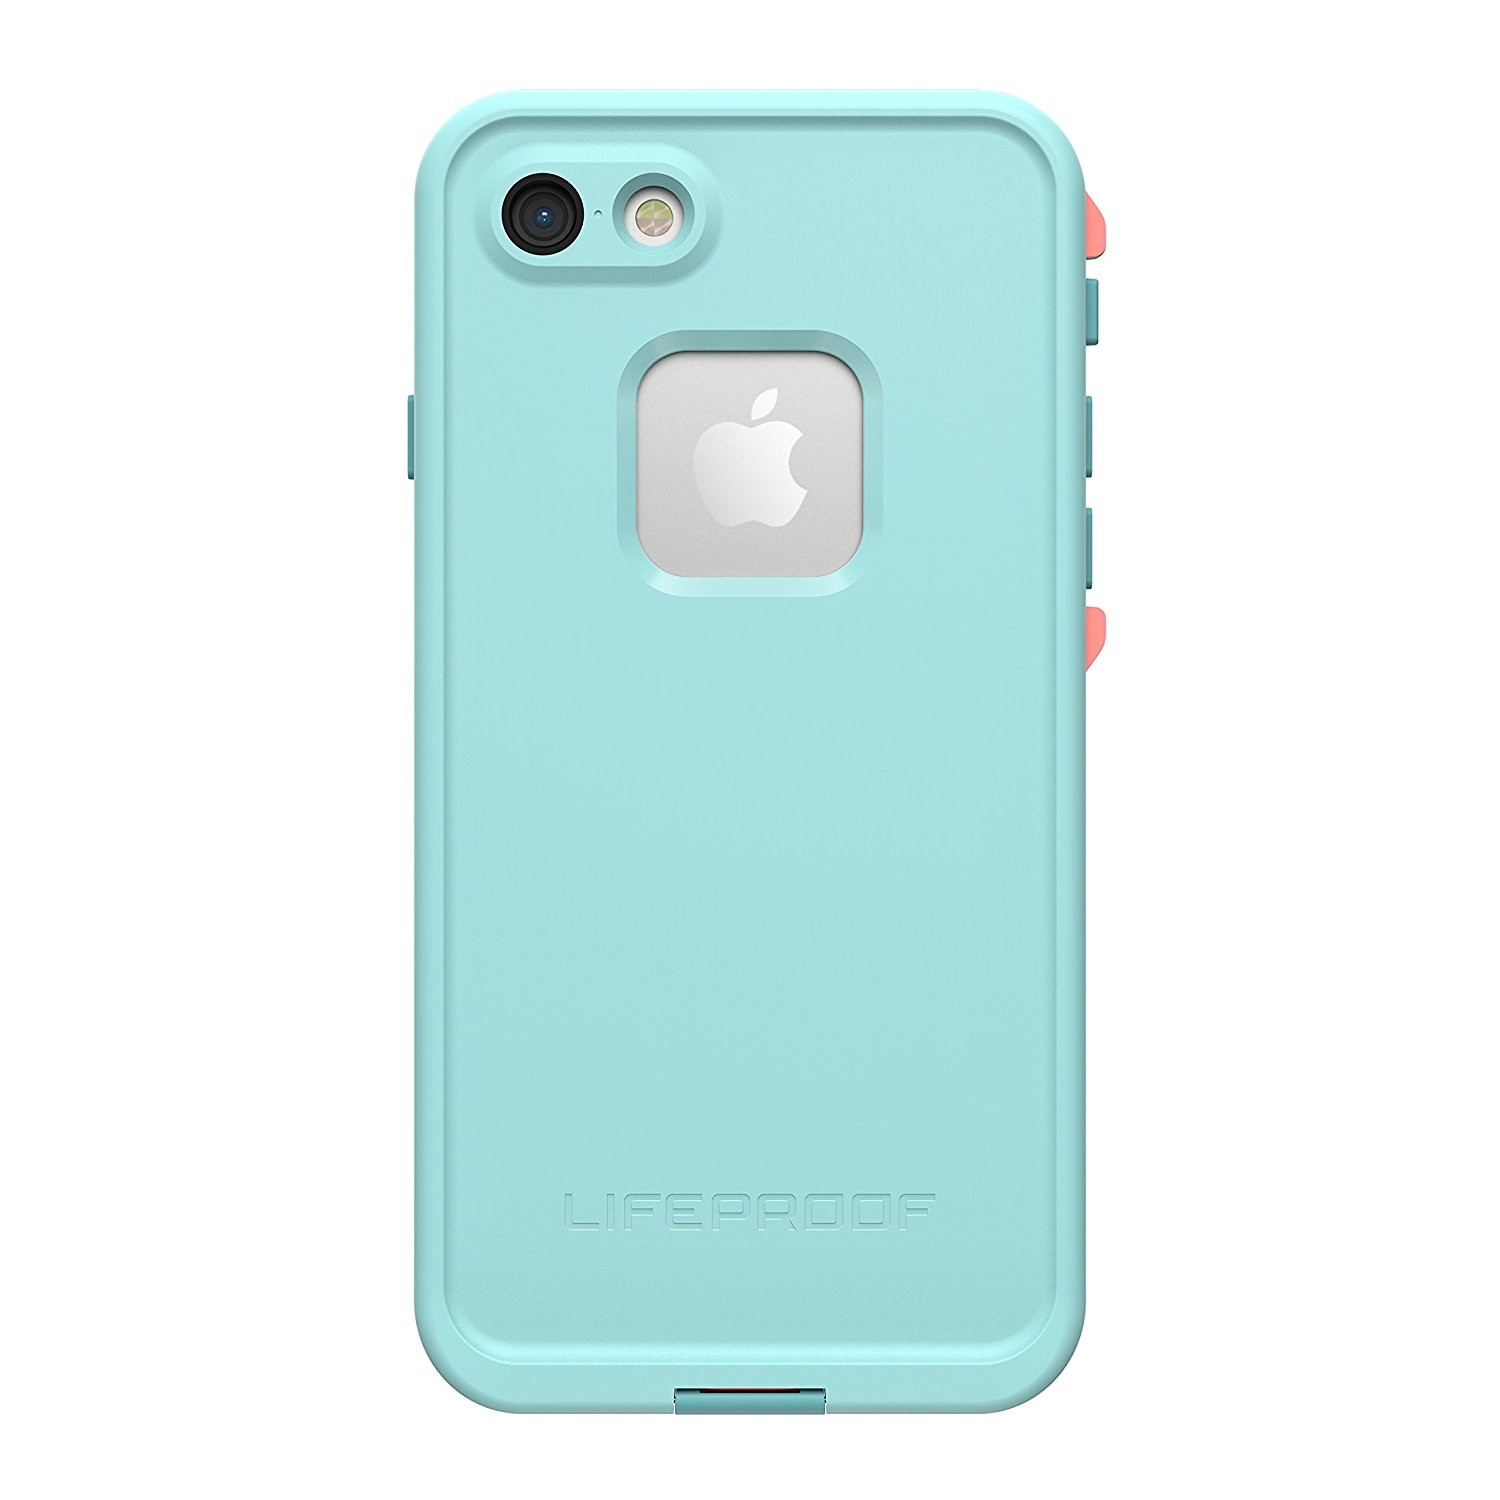 competitive price fff20 8c487 LifeProof fre Waterproof Case for Apple iPhone 8/7 - Wipeout (Blue  Tint/Fusion Coral/Mandalay Bay)